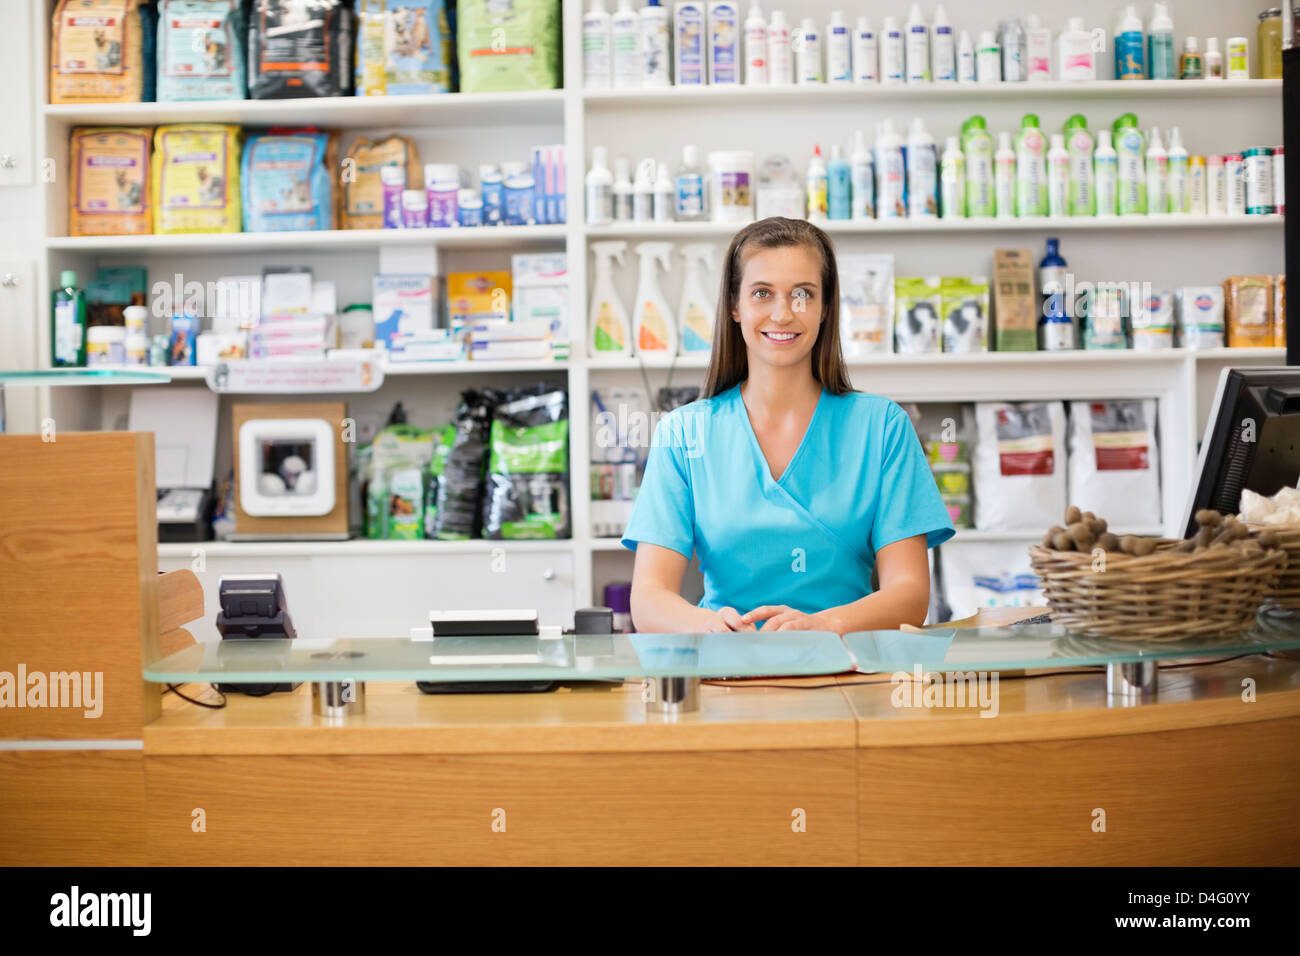 Receptionist at front desk of vet's surgery - Stock Image